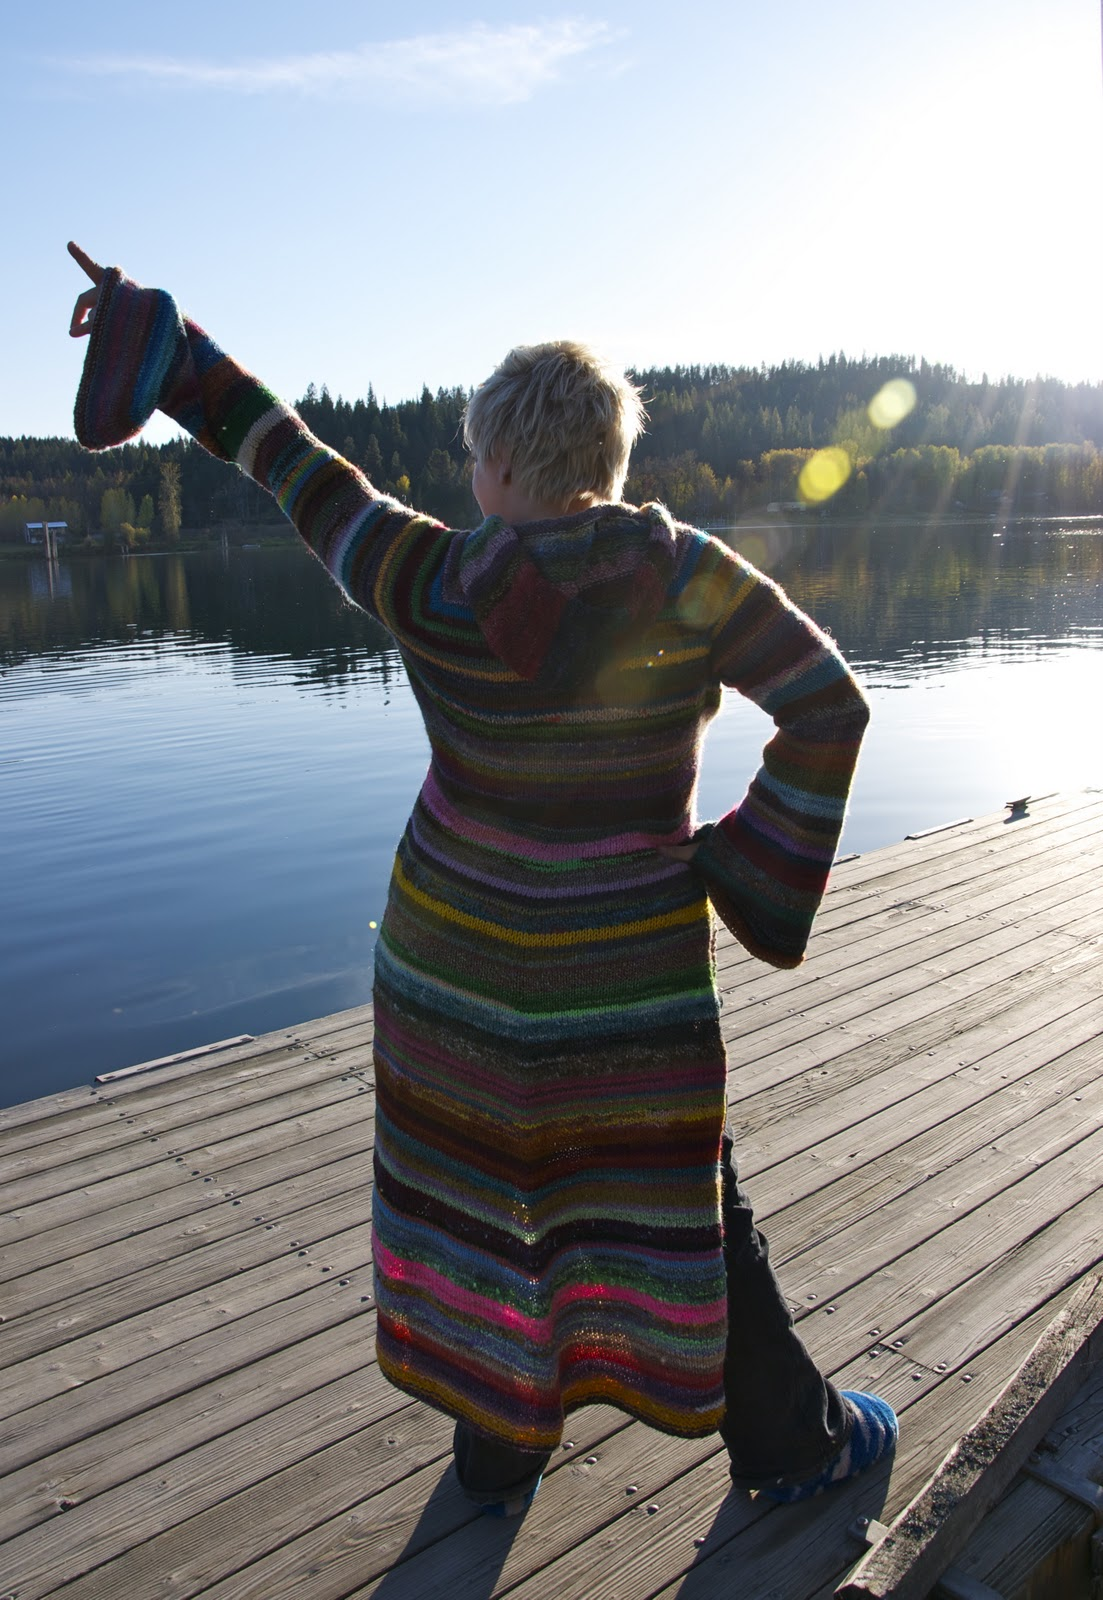 She Knit an Amazing Top-Down Technicolor Hoodie Sweater in Just 8 Weeks!